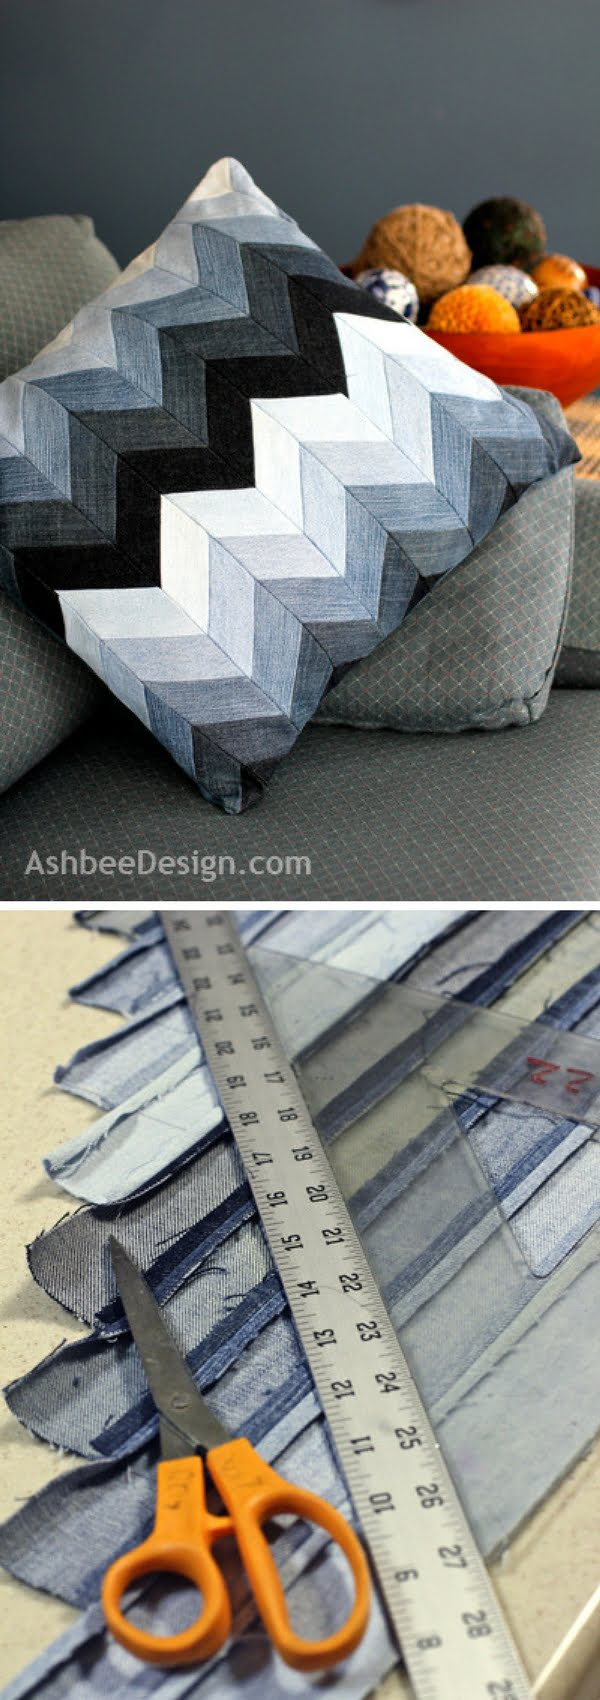 Check out how to make a decorative DIY chevron pillow from old jeans